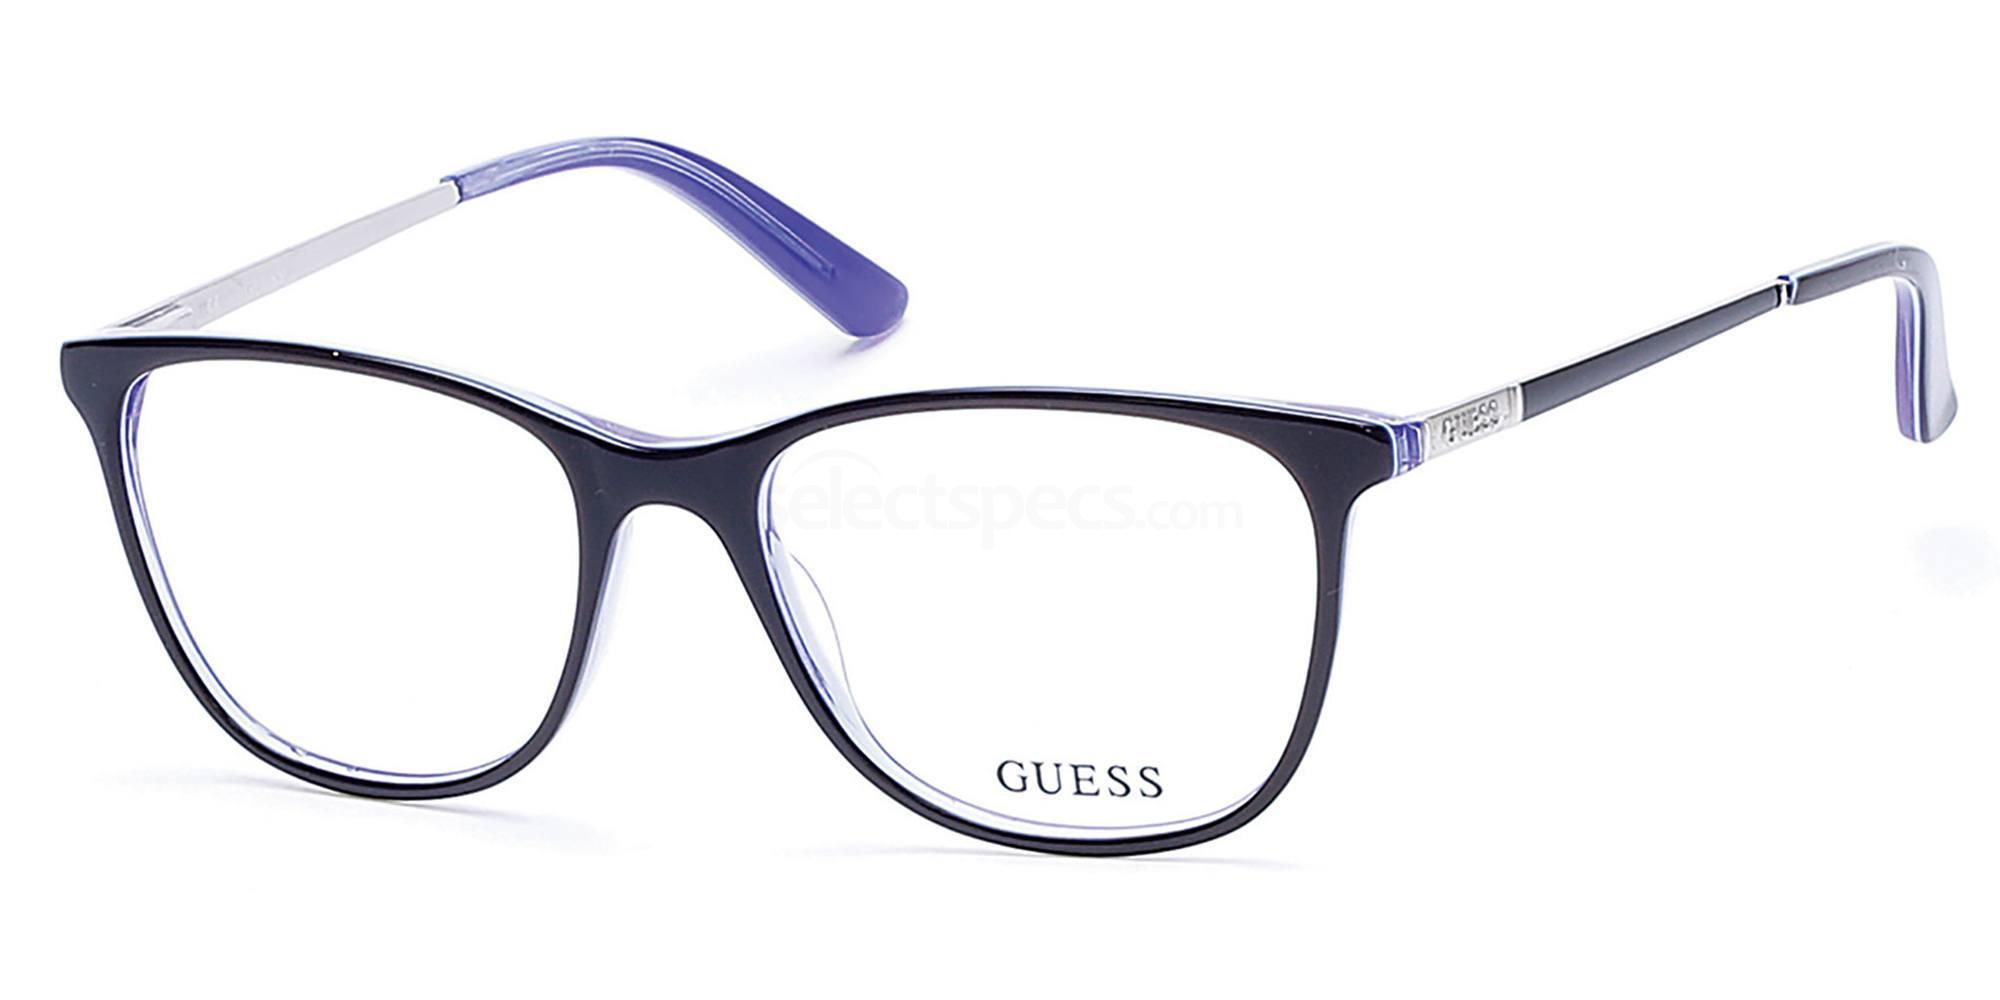 001 GU2566 Glasses, Guess